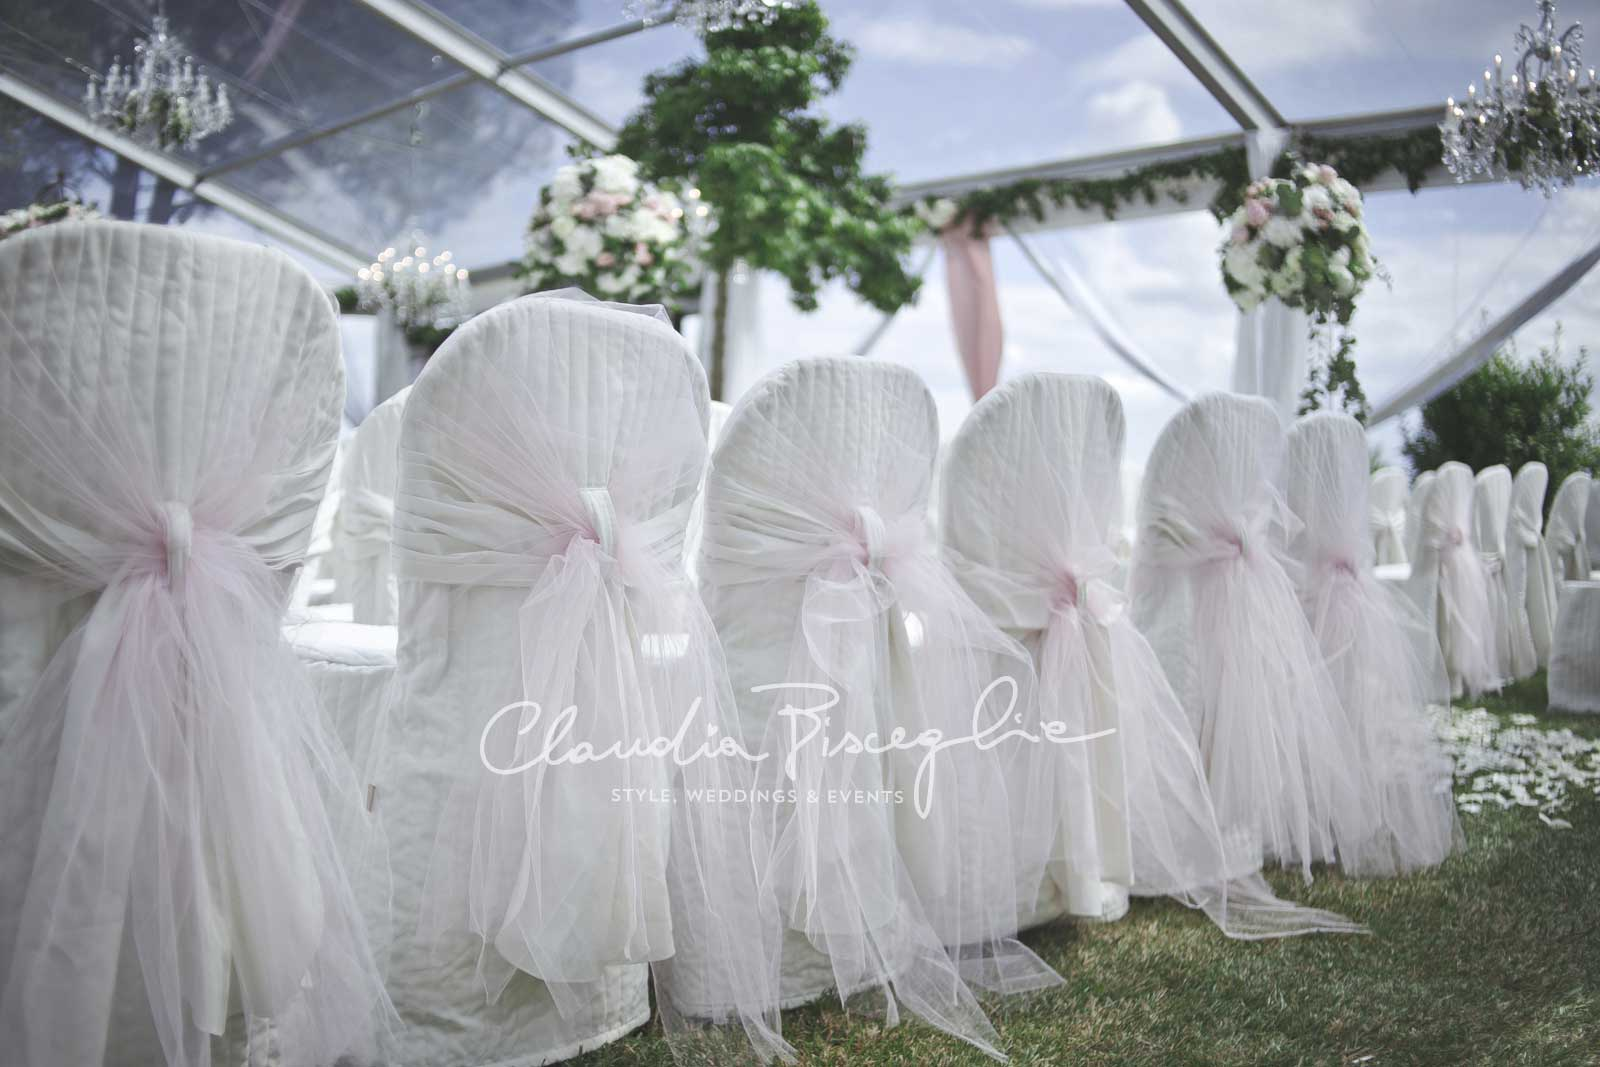 22A-Setting-veil-flowers-decoration-styledbyClaudiaBisceglie